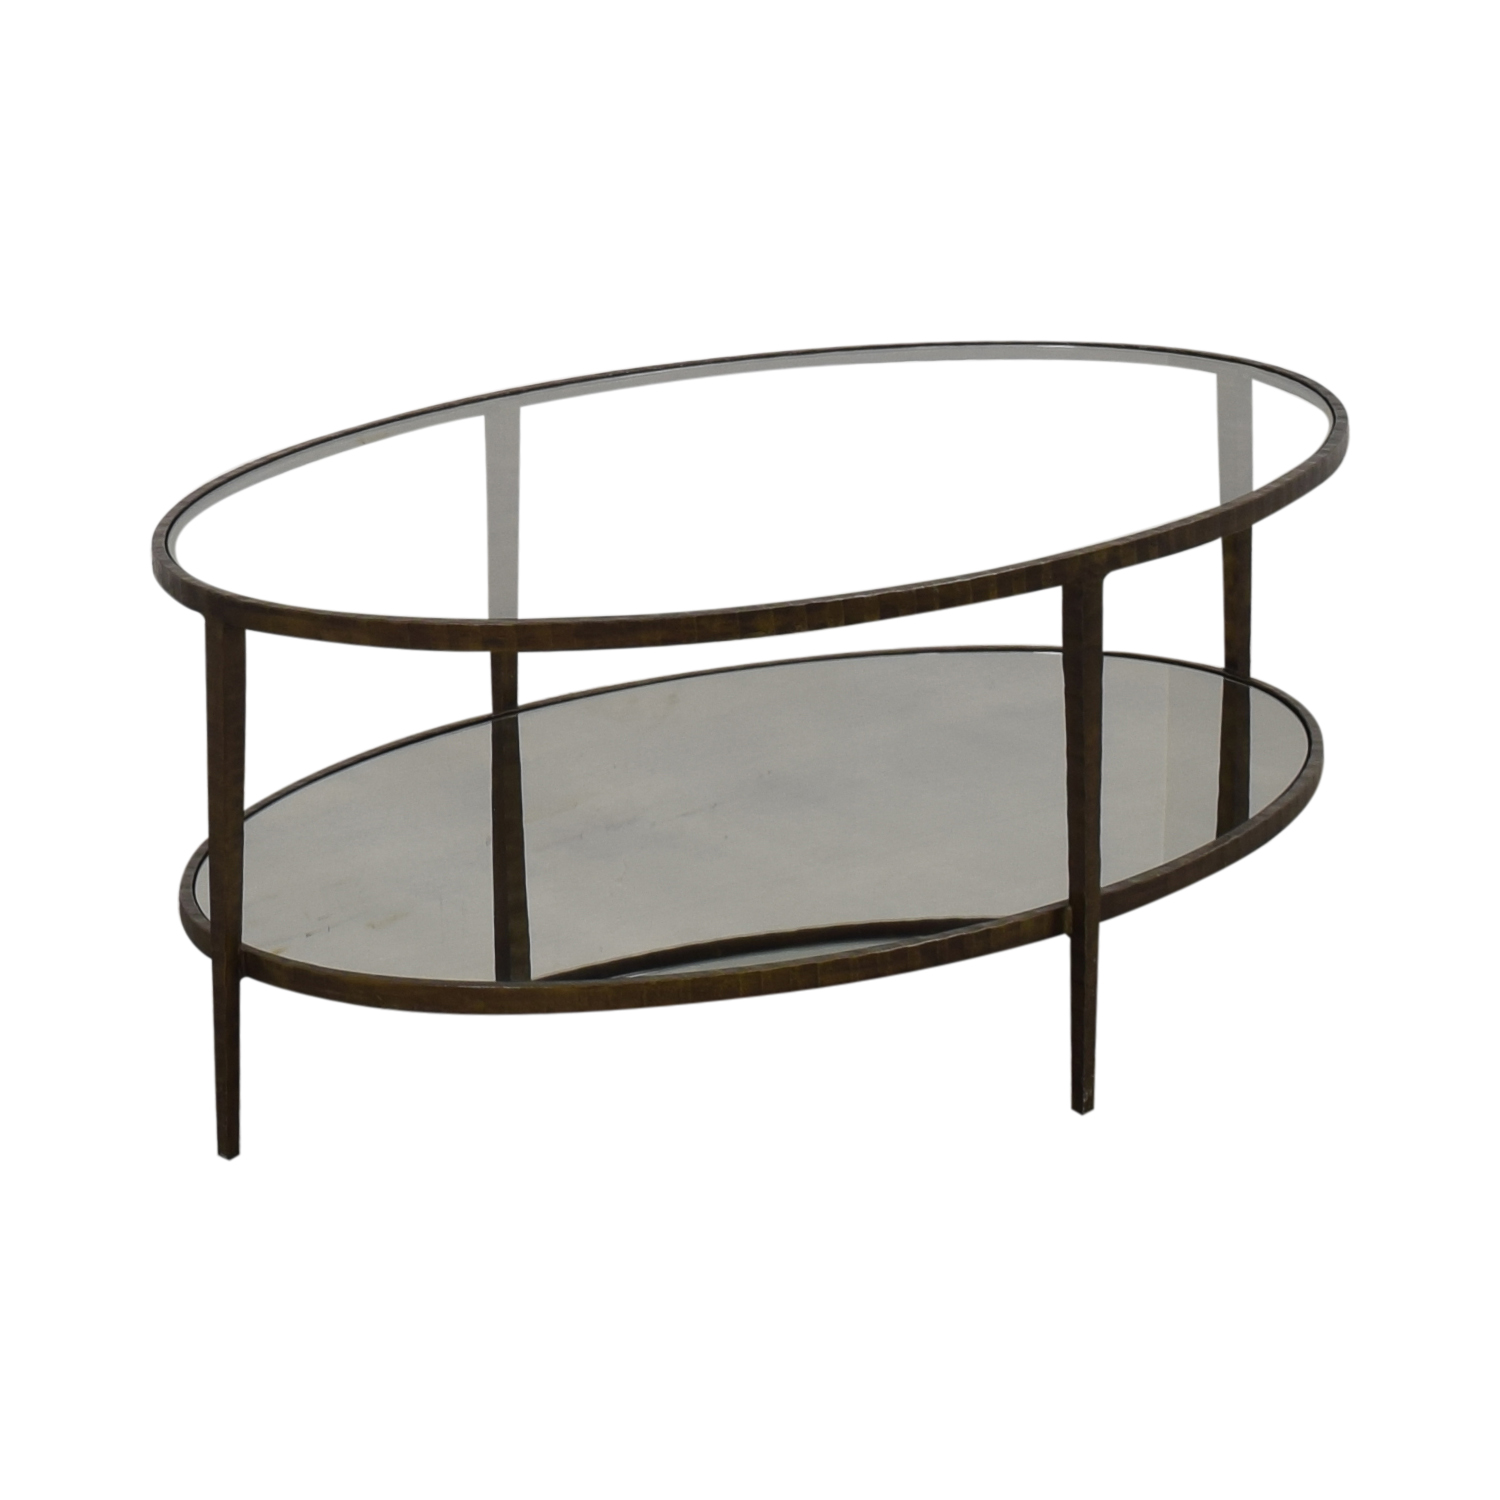 Crate & Barrel Crate & Barrel Clairemont Oval Coffee Table pa